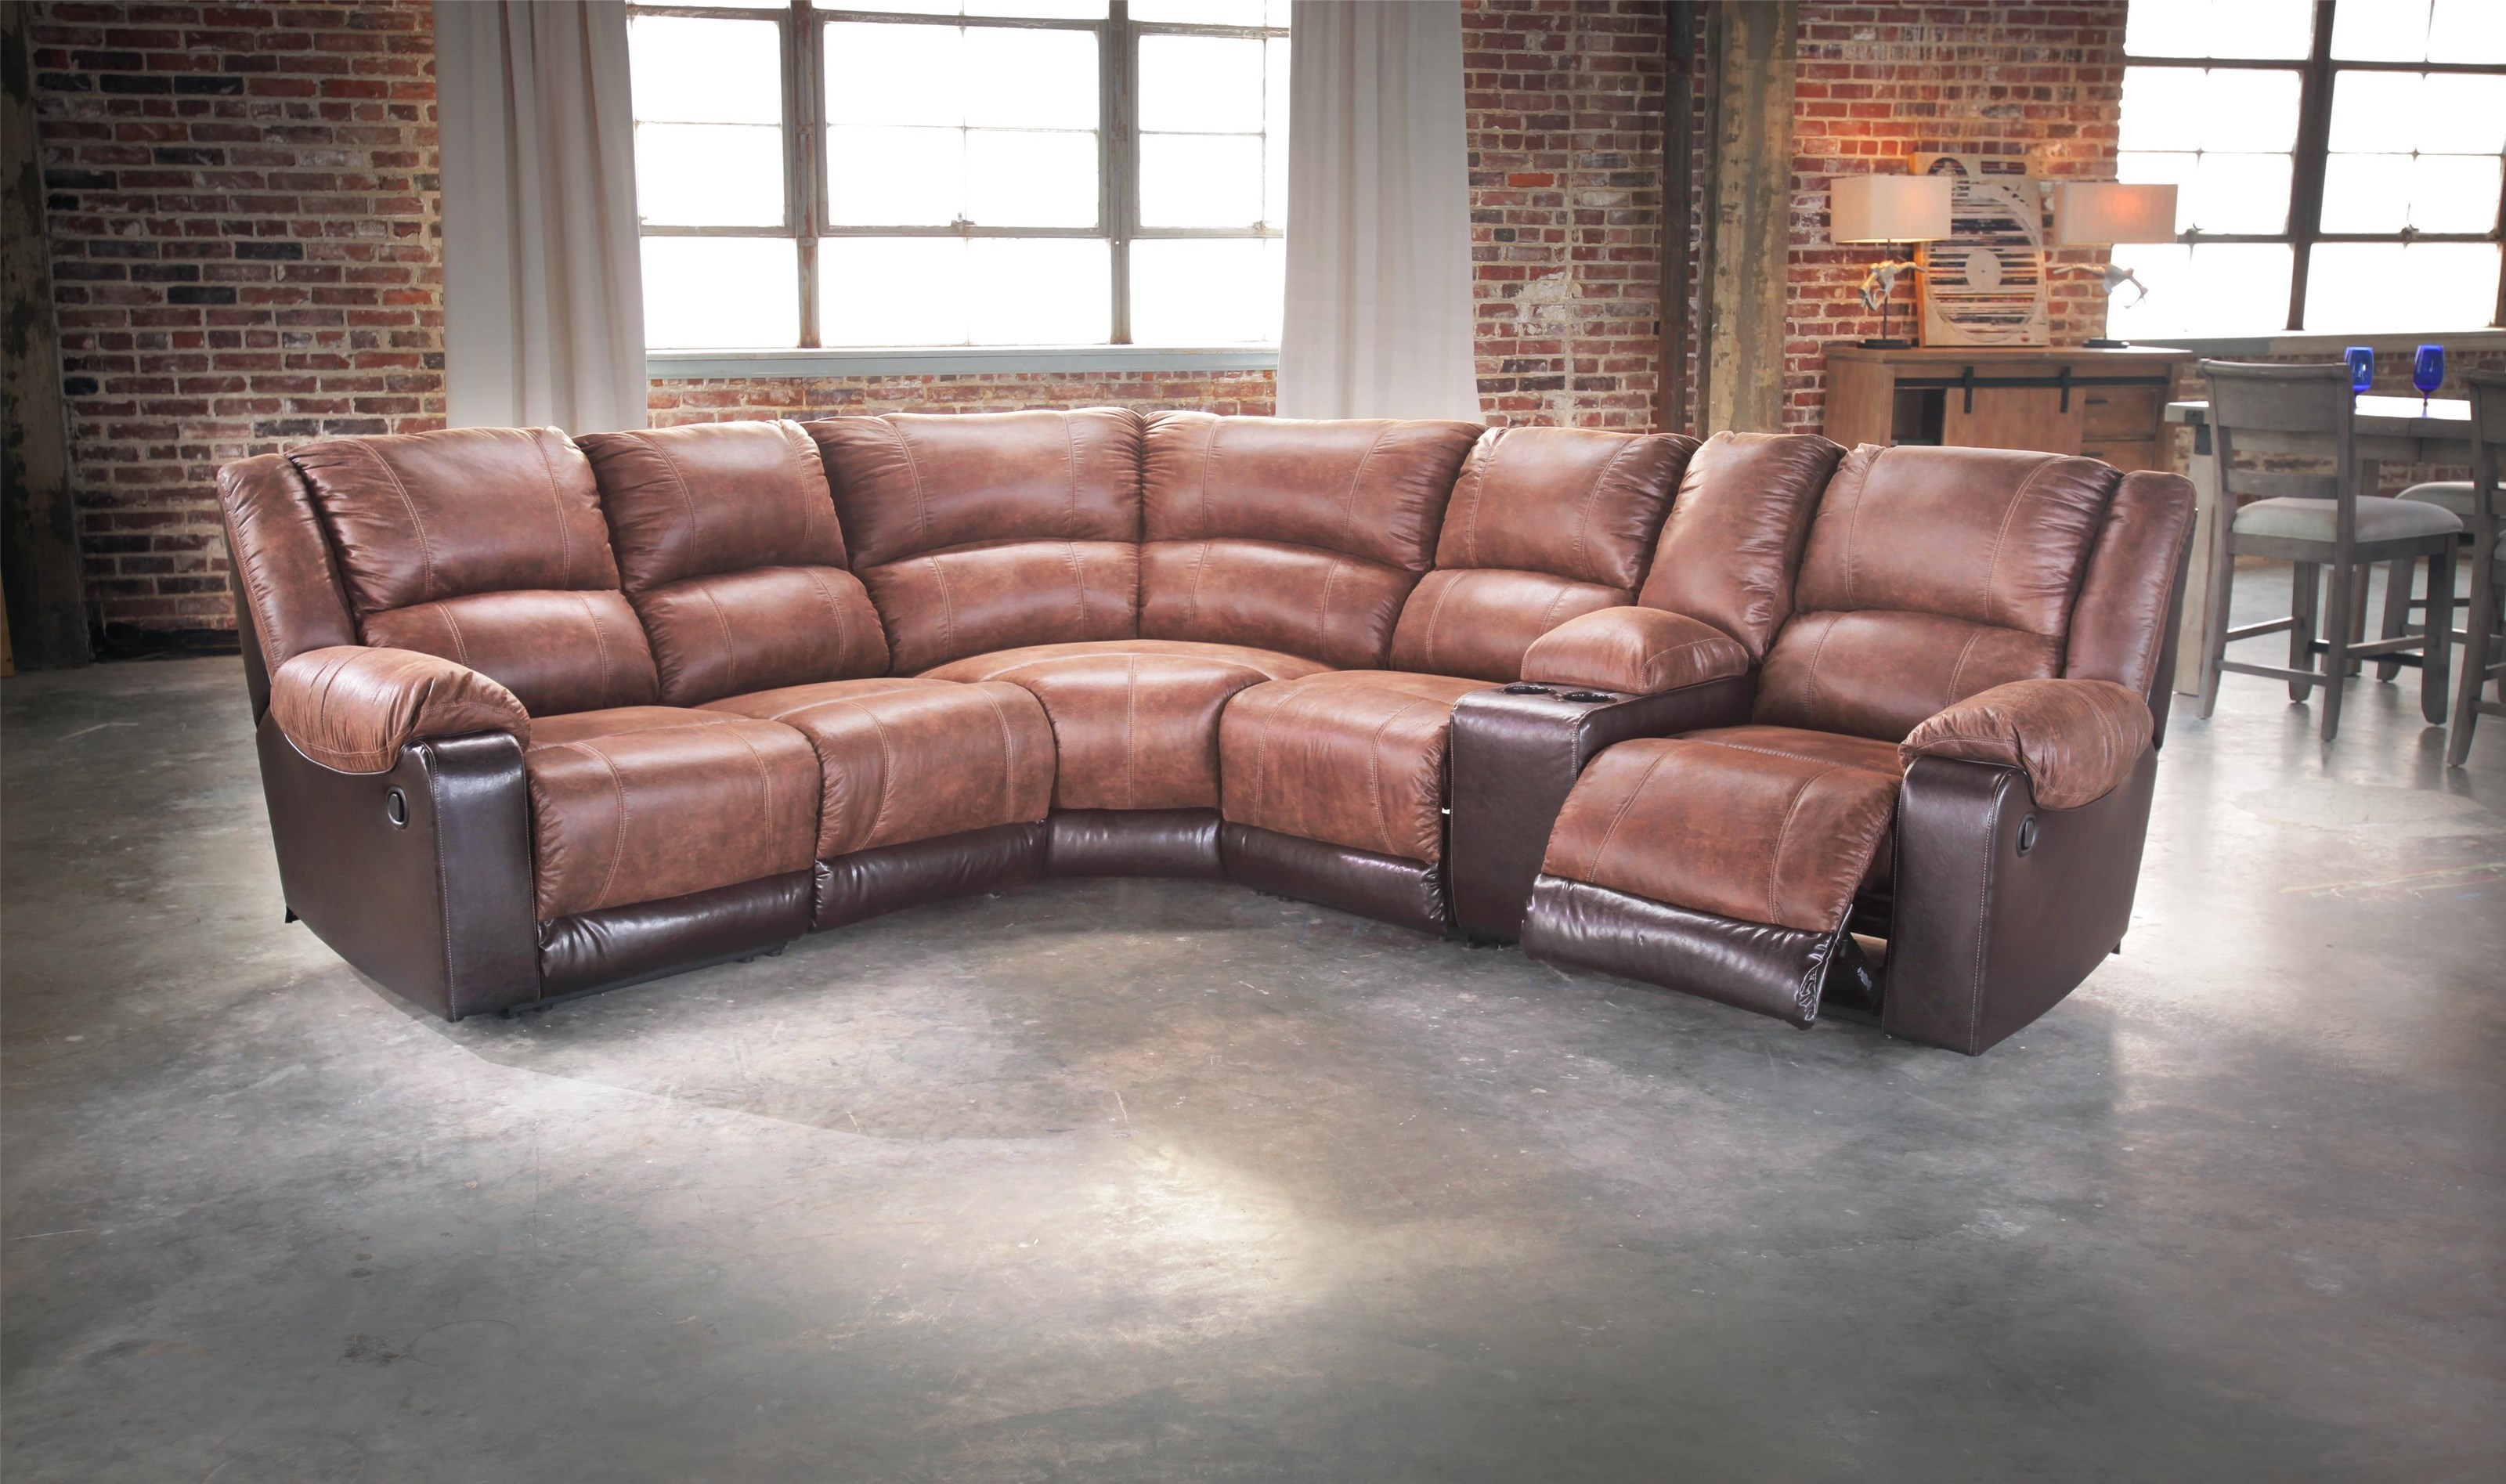 signature design by ashley nantahala faux leather reclining sectional with console u0026 3 recliners royal furniture reclining sectional sofas